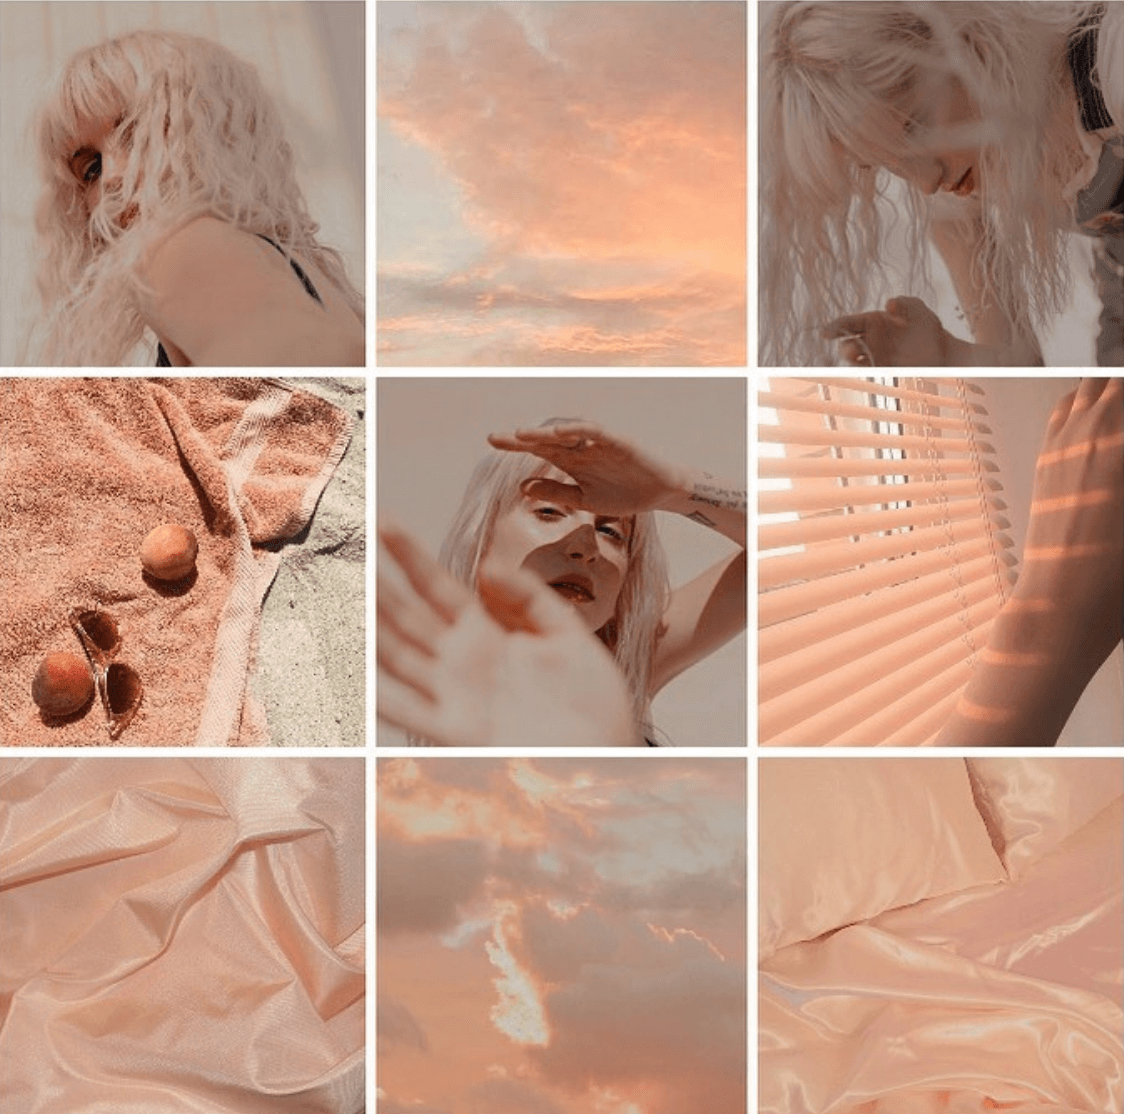 aesthetic-one-091719